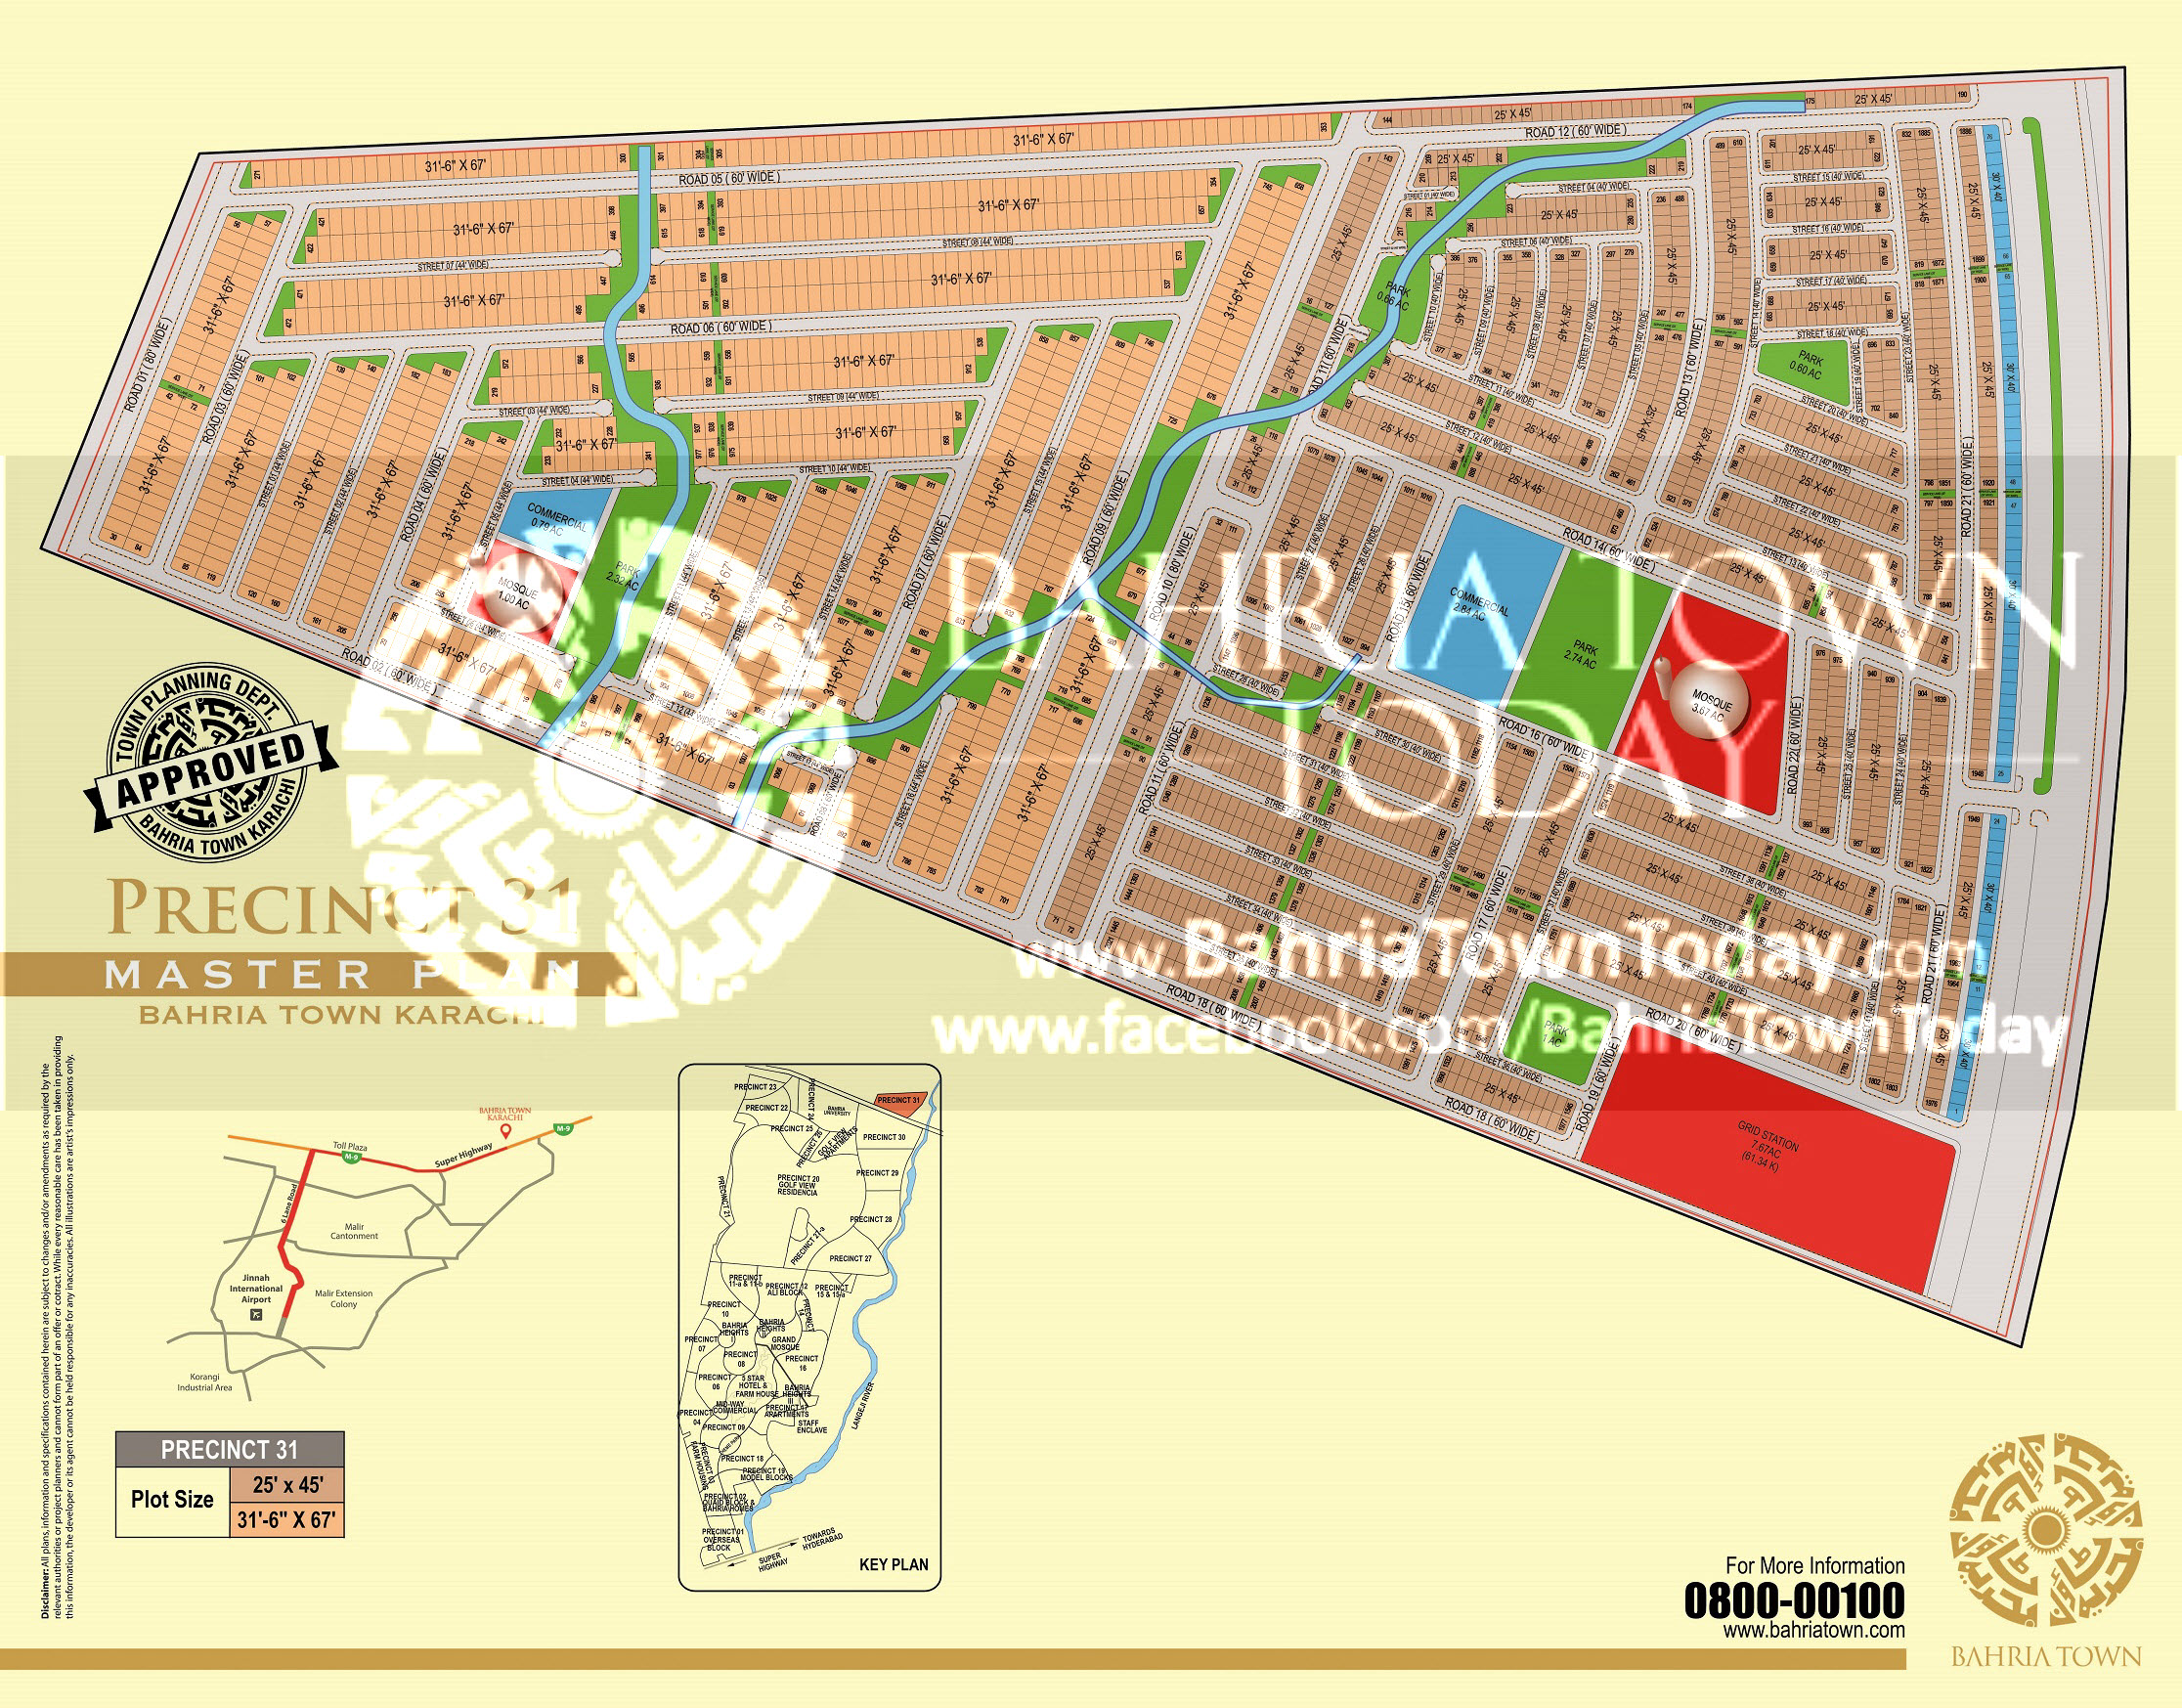 Bahria Town Karachi – Precinct 31 High Resolution Map